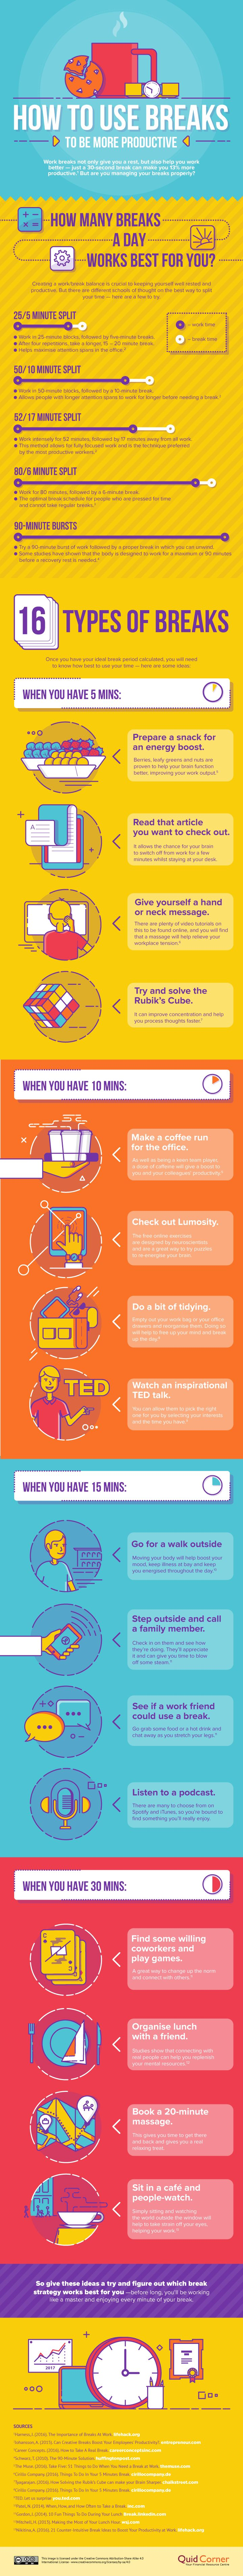 How to Use Breaks to Be More Productive #Infographic #Career #HowTo